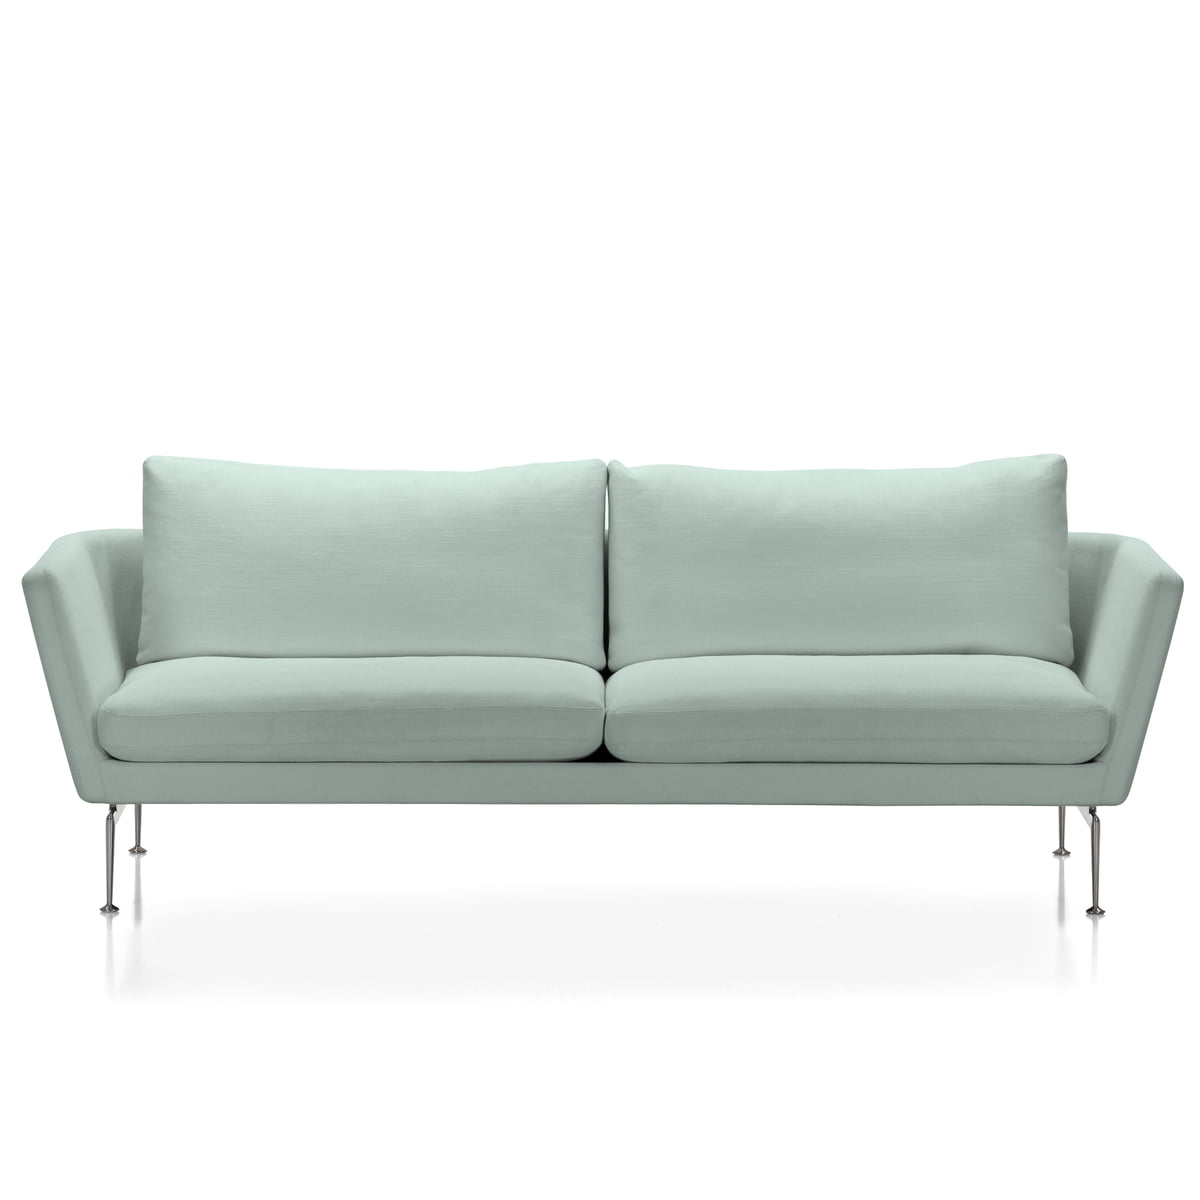 Suita Sofa by Vitra